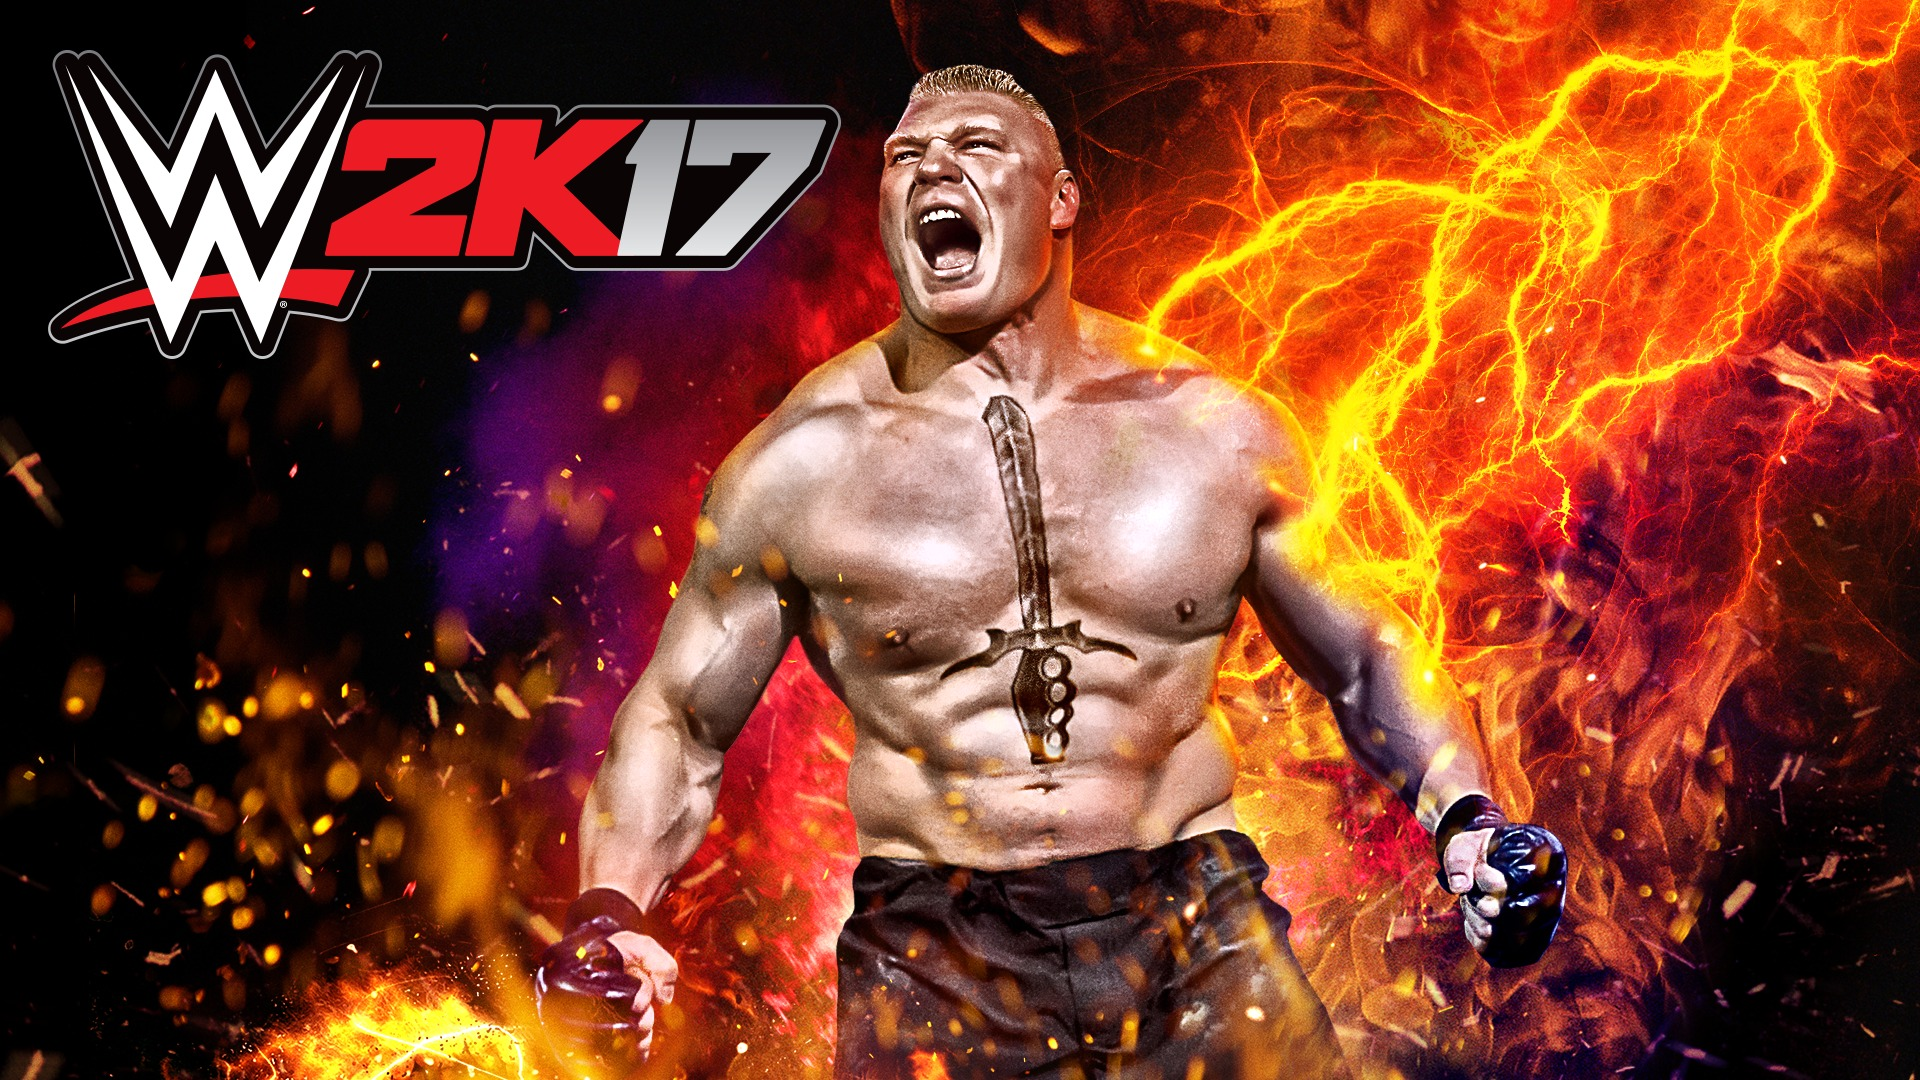 Wwe 2k17 hd wallpapers we present collection of wwe 2k17 hd wallpapers in high quality and additional high resolution pictures and images for desktop android and ios voltagebd Images